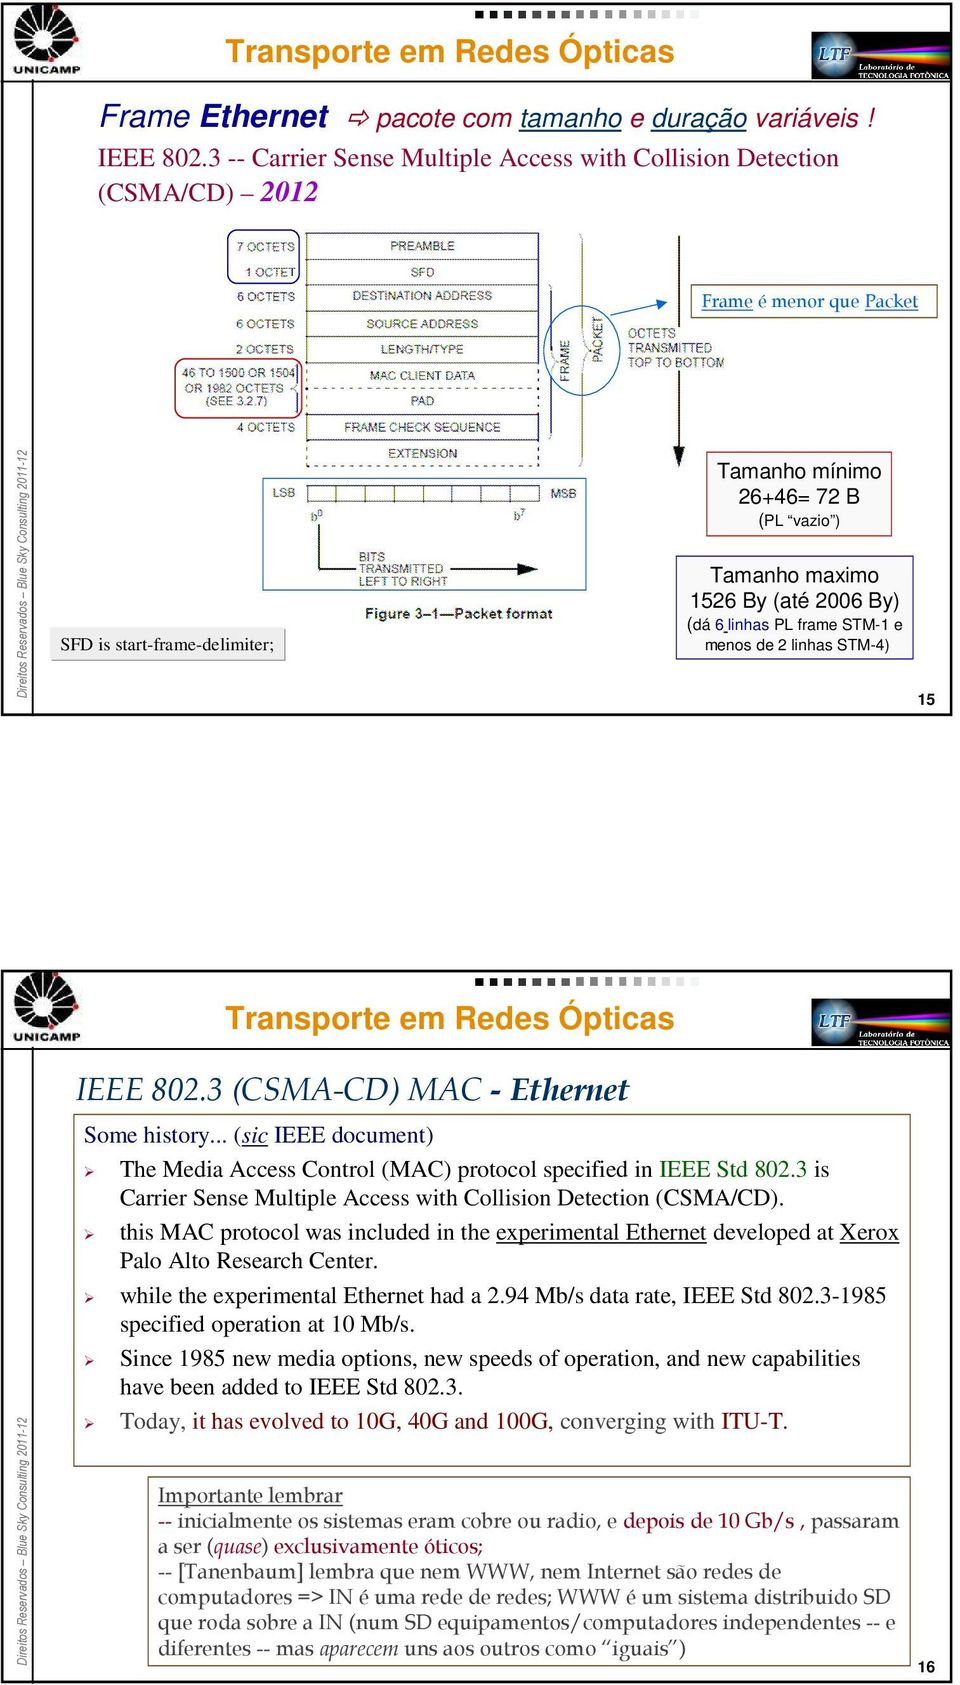 By) (dá 6 linhas PL frame STM-1 e menos de 2 linhas STM-4) 15 IEEE 802.3 (CSMA-CD) MAC -Ethernet Some history... (sic IEEE document) The Media Access Control (MAC) protocol specified in IEEE Std 802.